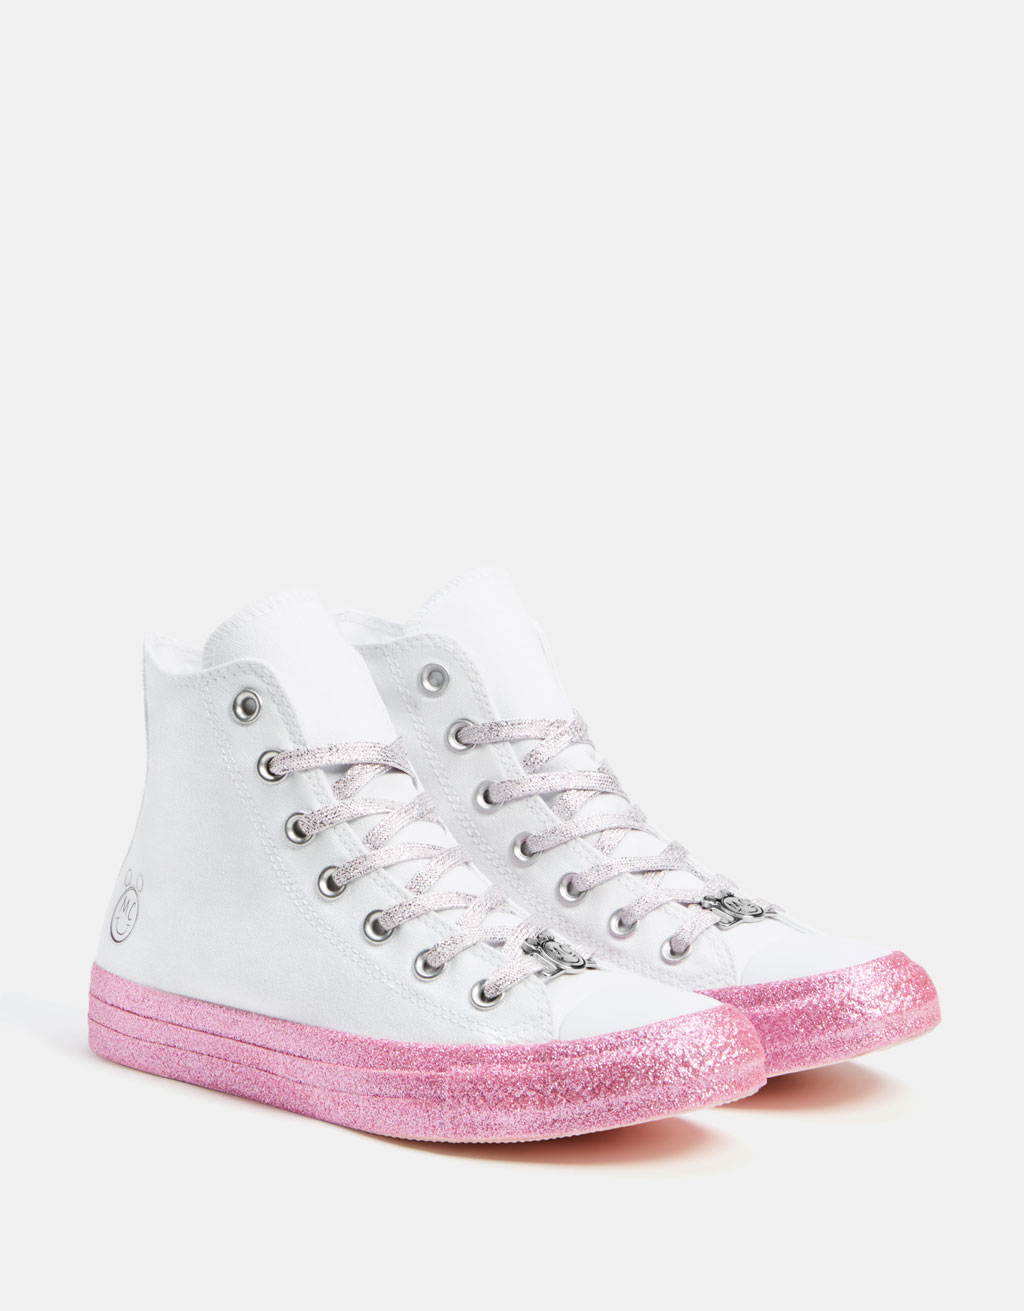 Baskets toile Converse X Miley Cyrus